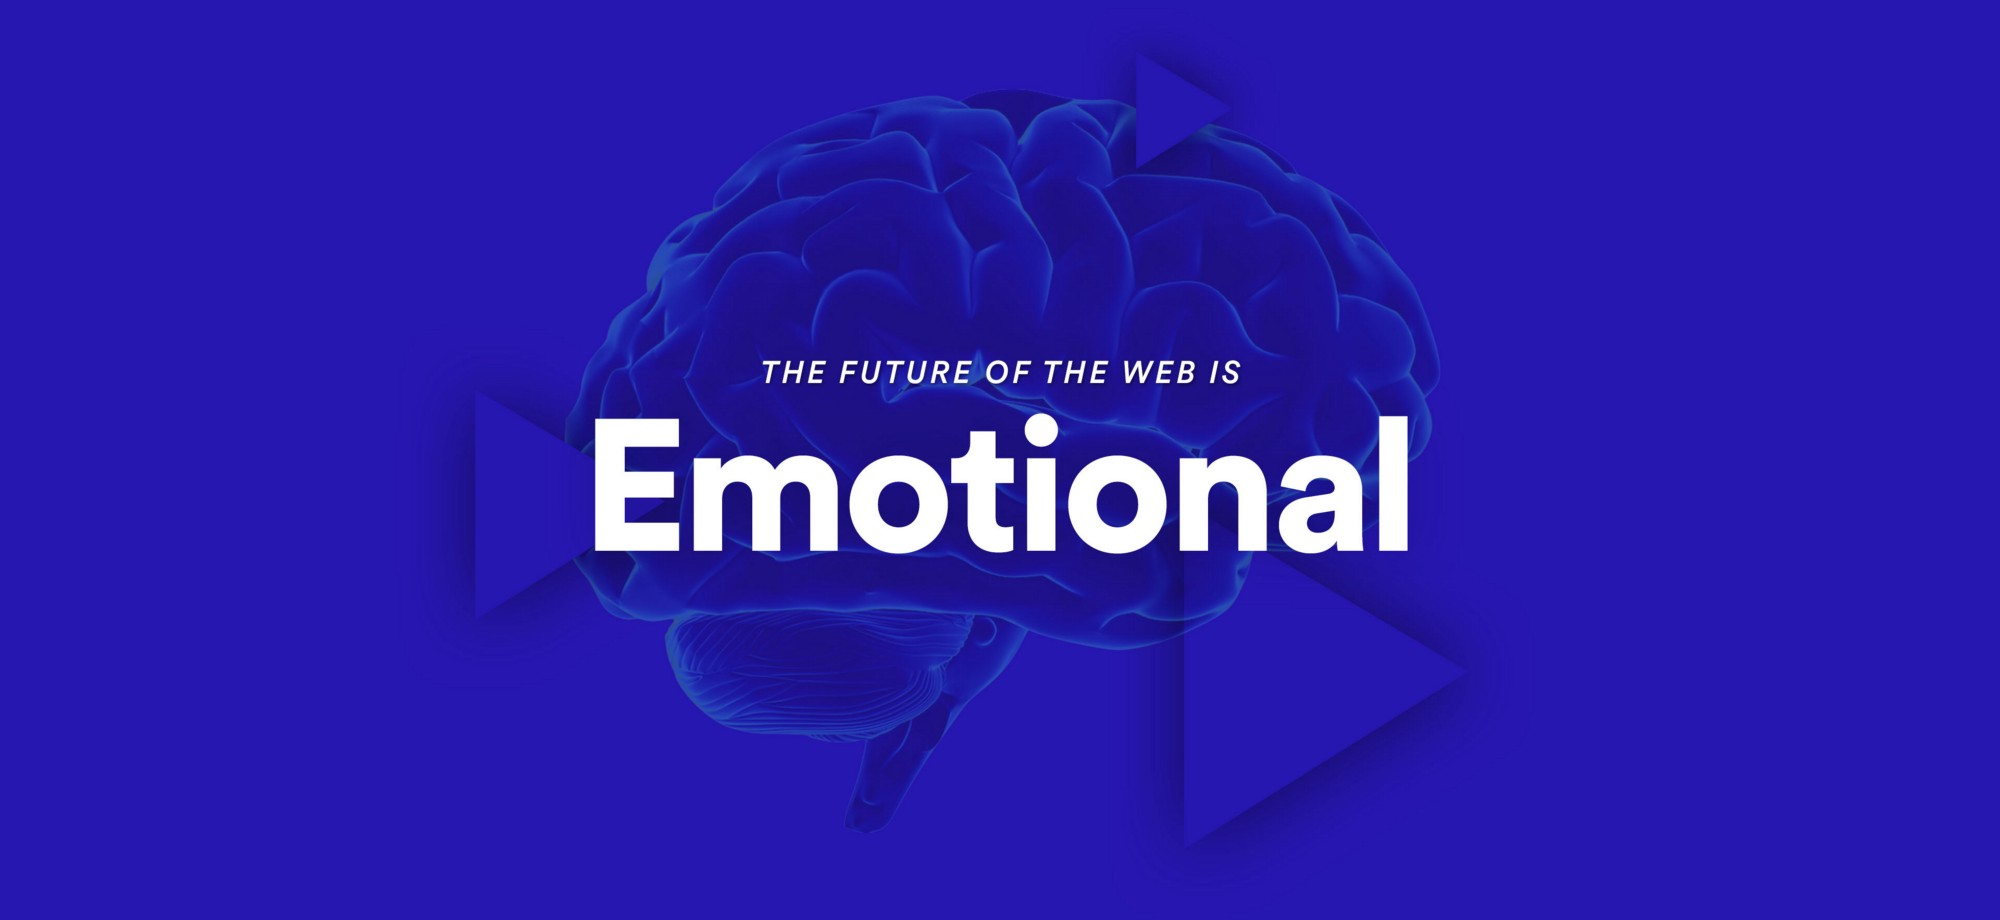 Fantasy.co Head of UX Peter Smart predicts that the future of interactive design will be emotional. Read his long, informative blog here.